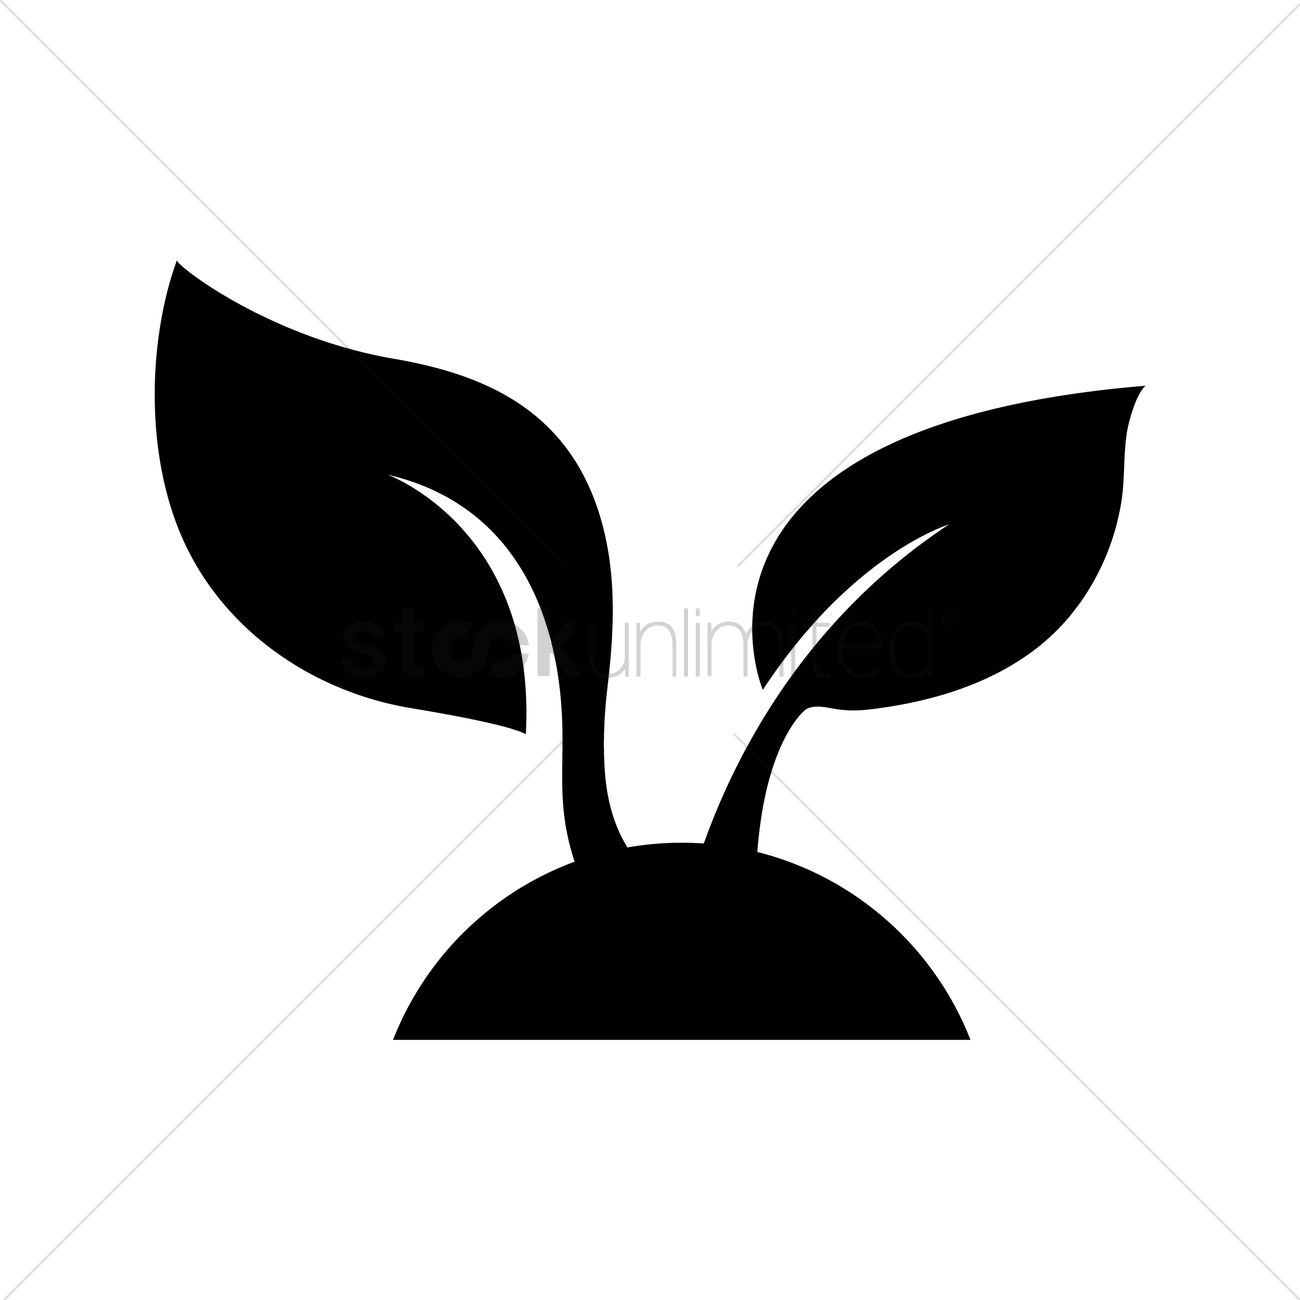 1300x1300 Silhouette Of A Sprout Vector Image